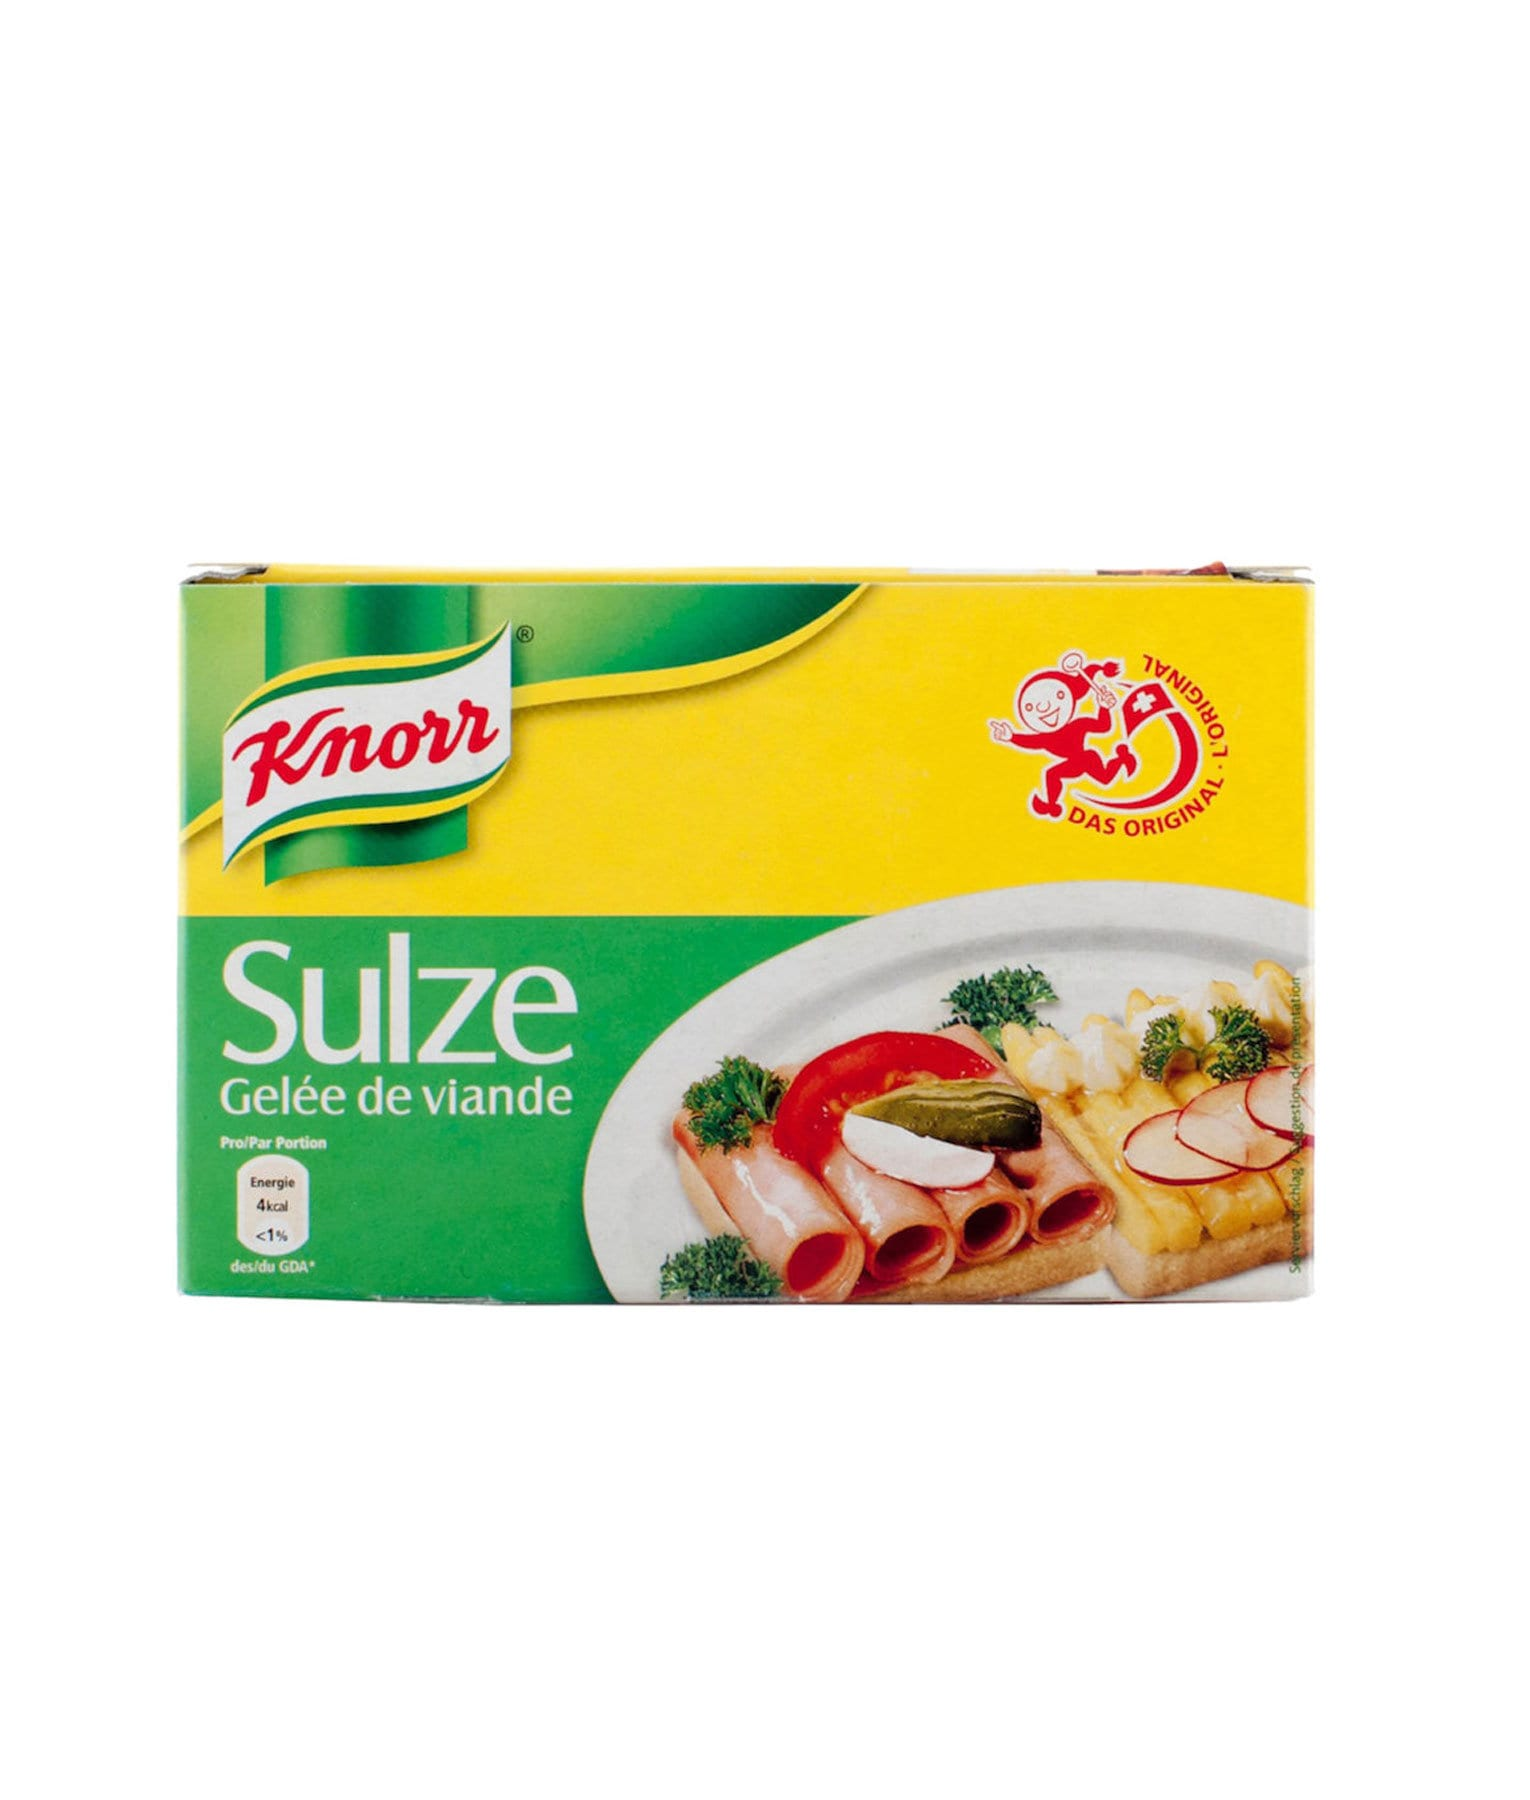 knorr-aspic-jelly